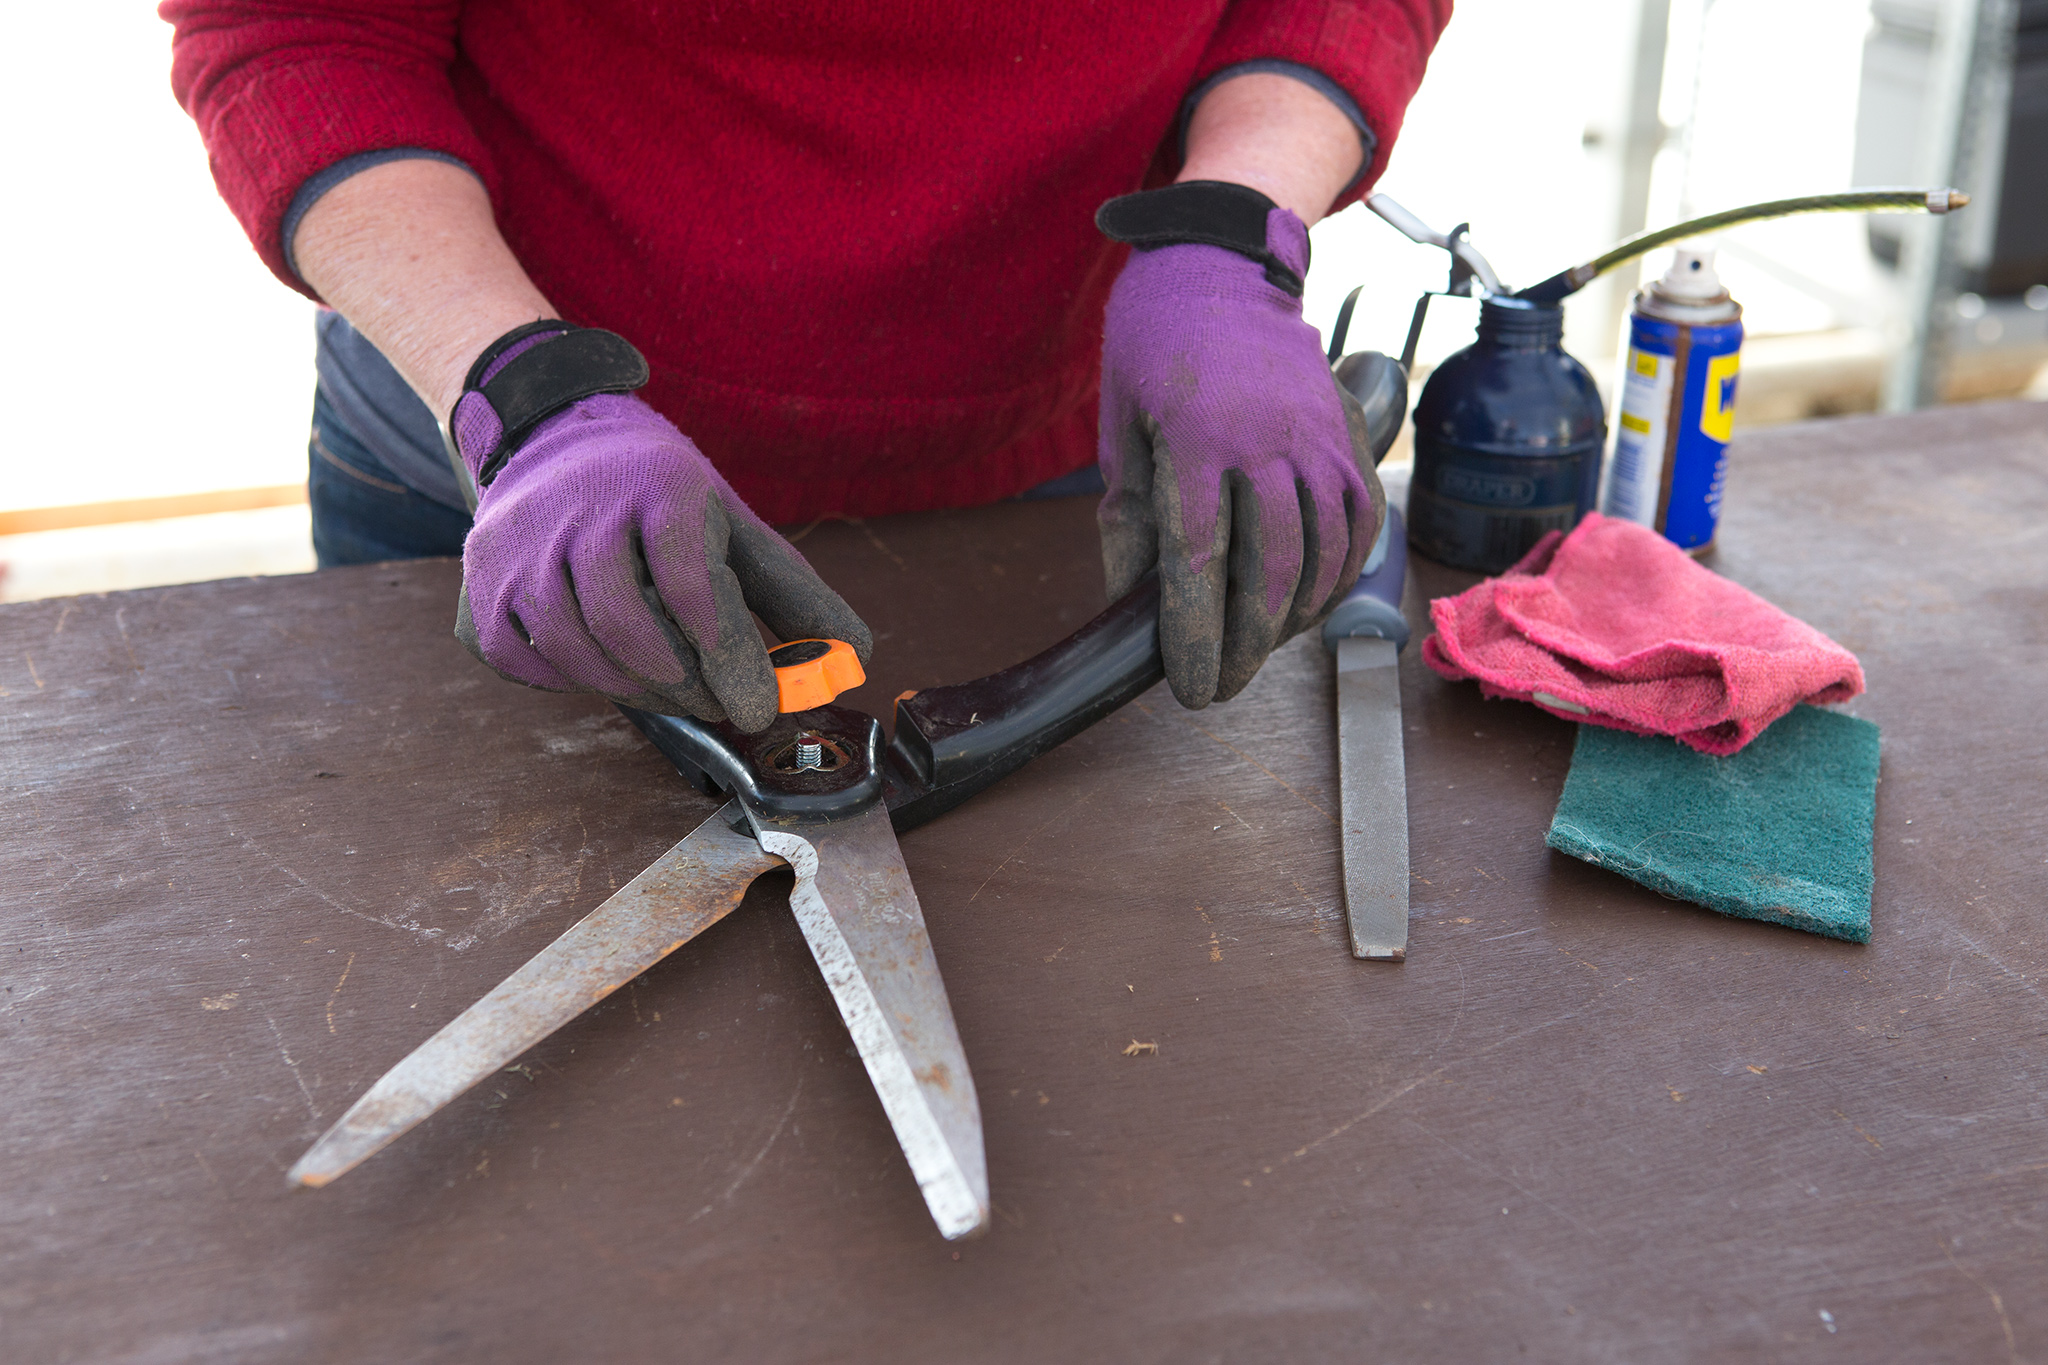 Maintaining shears